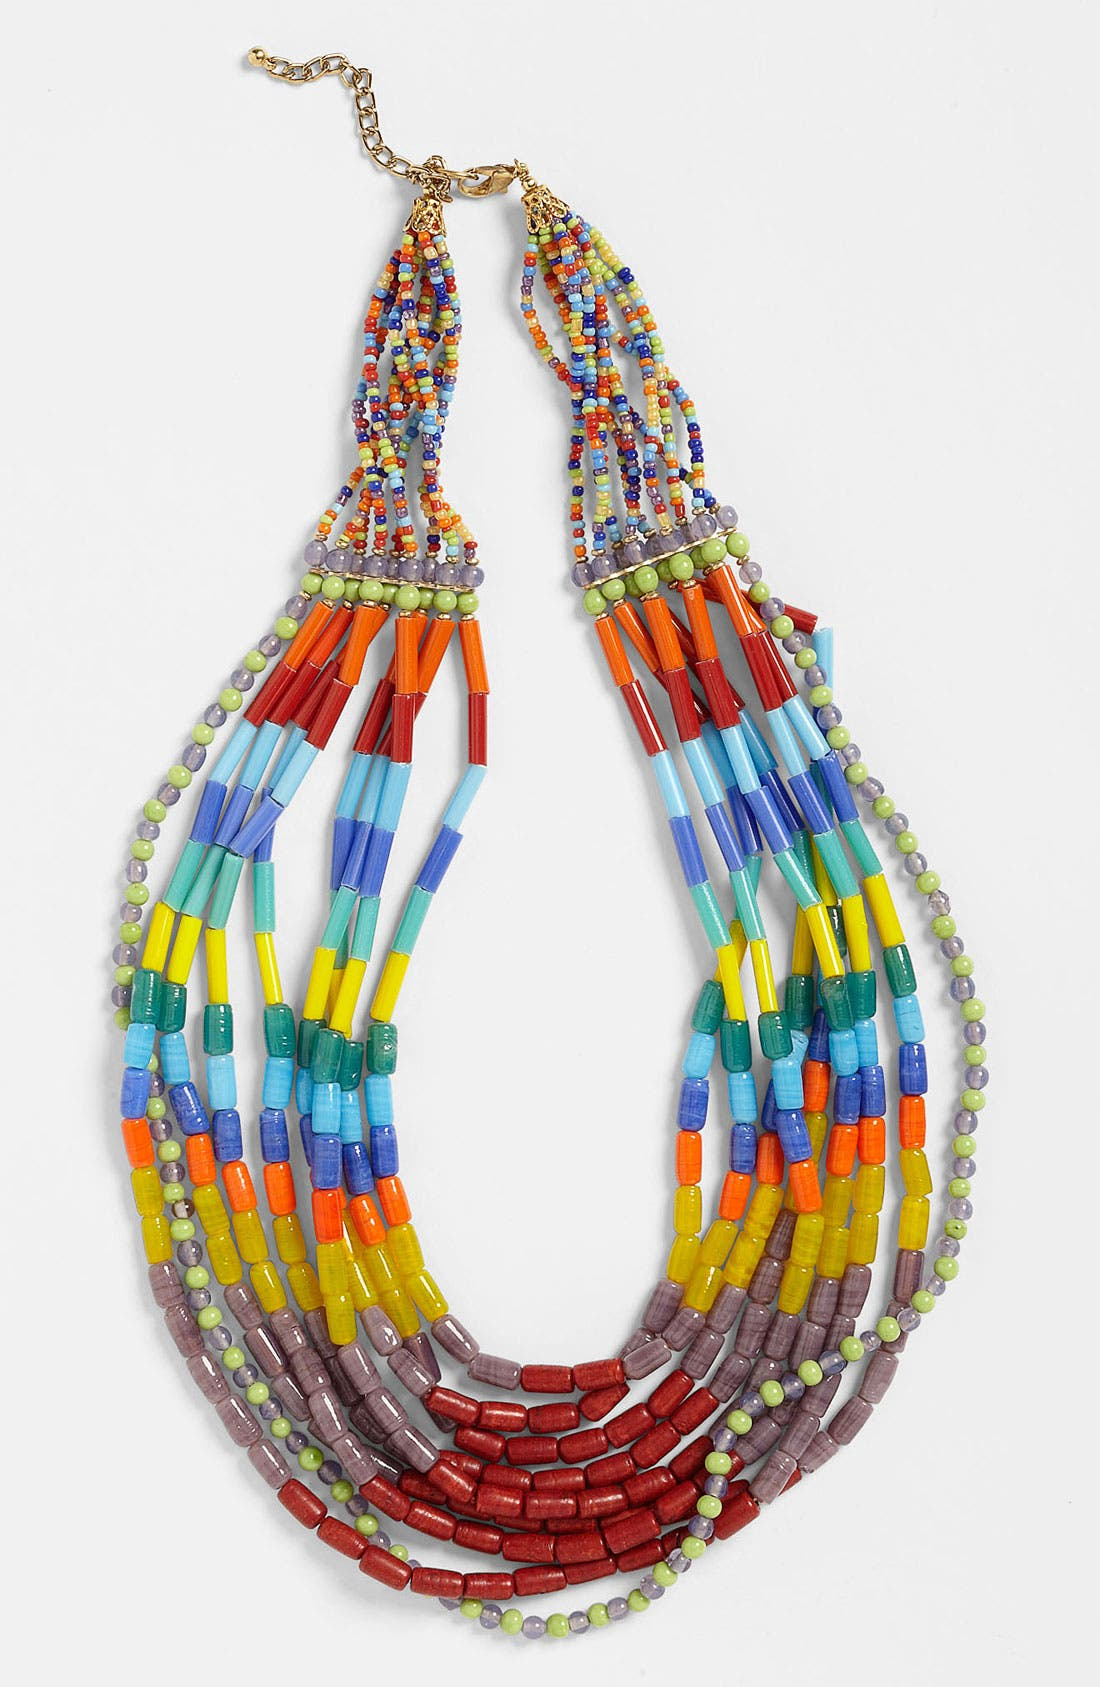 Main Image - Spring Street Design Group 'Frida' Beaded Necklace